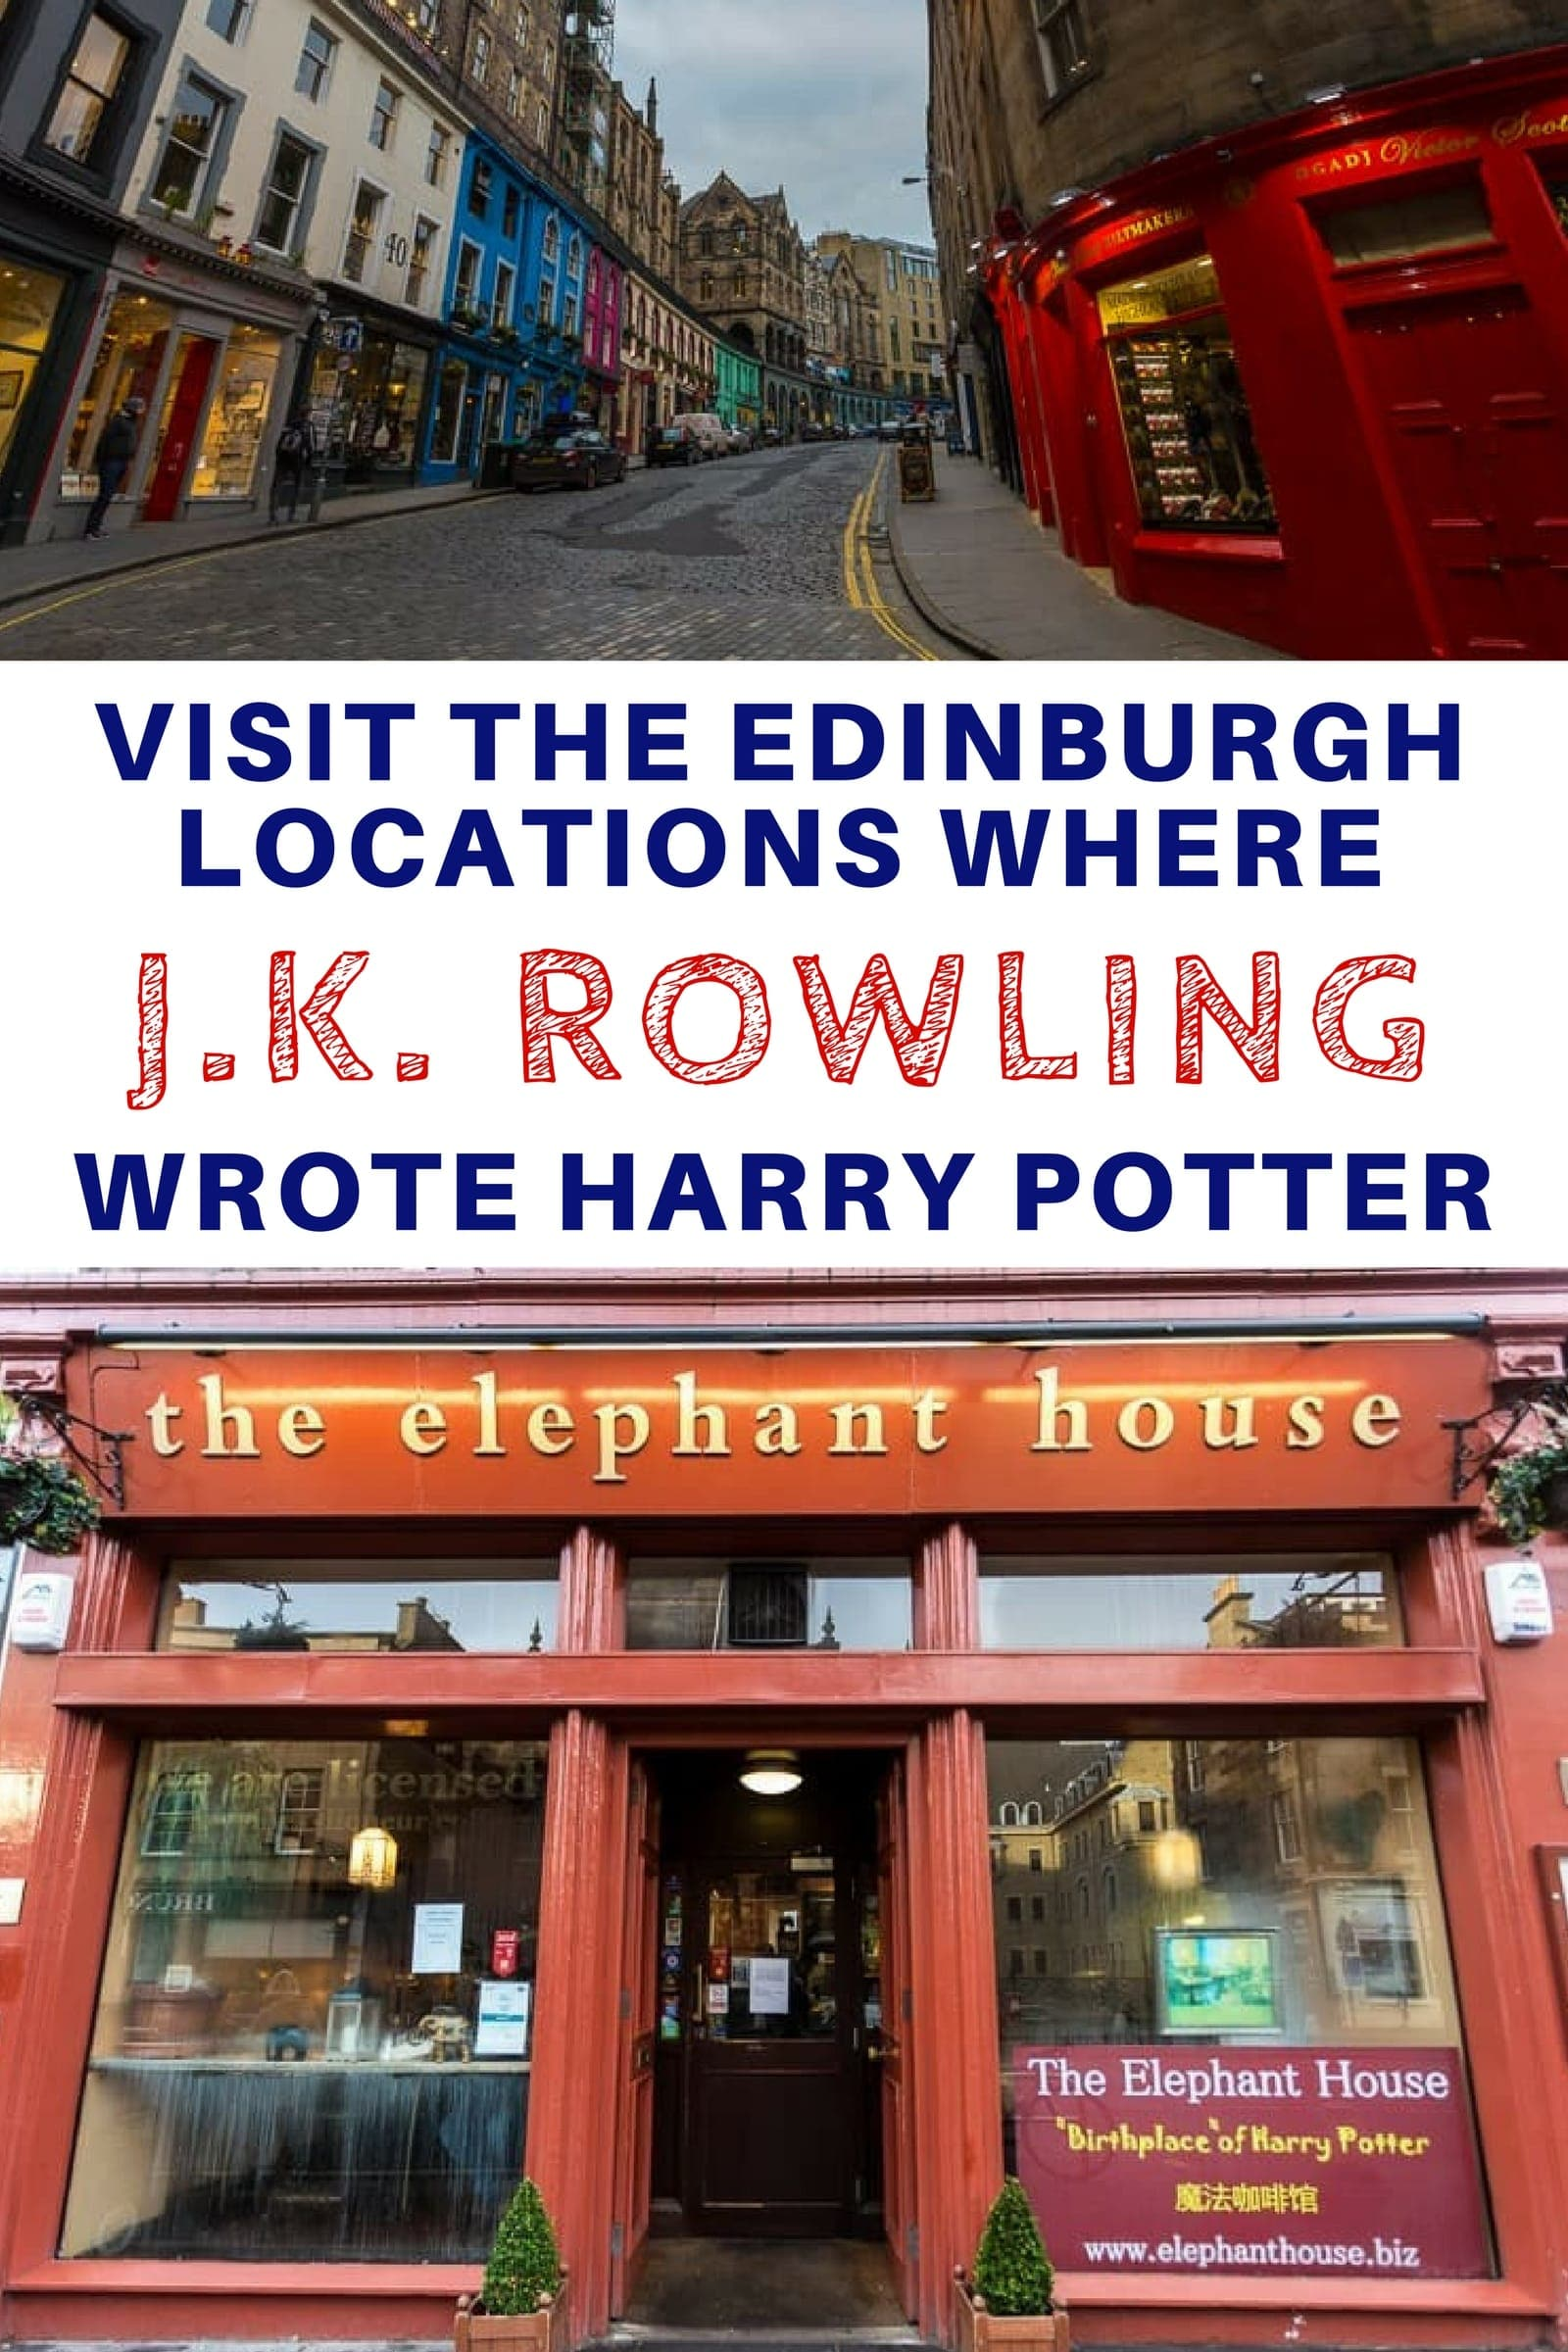 Visit the places where J.K. Rowling wrote the Harry Potter books in Edinburgh Scotland. If you are a Harry Potter fan visiting Edinburgh, you might want to make a pilgrimage to these places which include cafes and a hotel. #HarryPotter #HarryPotterinEdinburgh #Edinburgh #JKRowling #Edinburghtravel